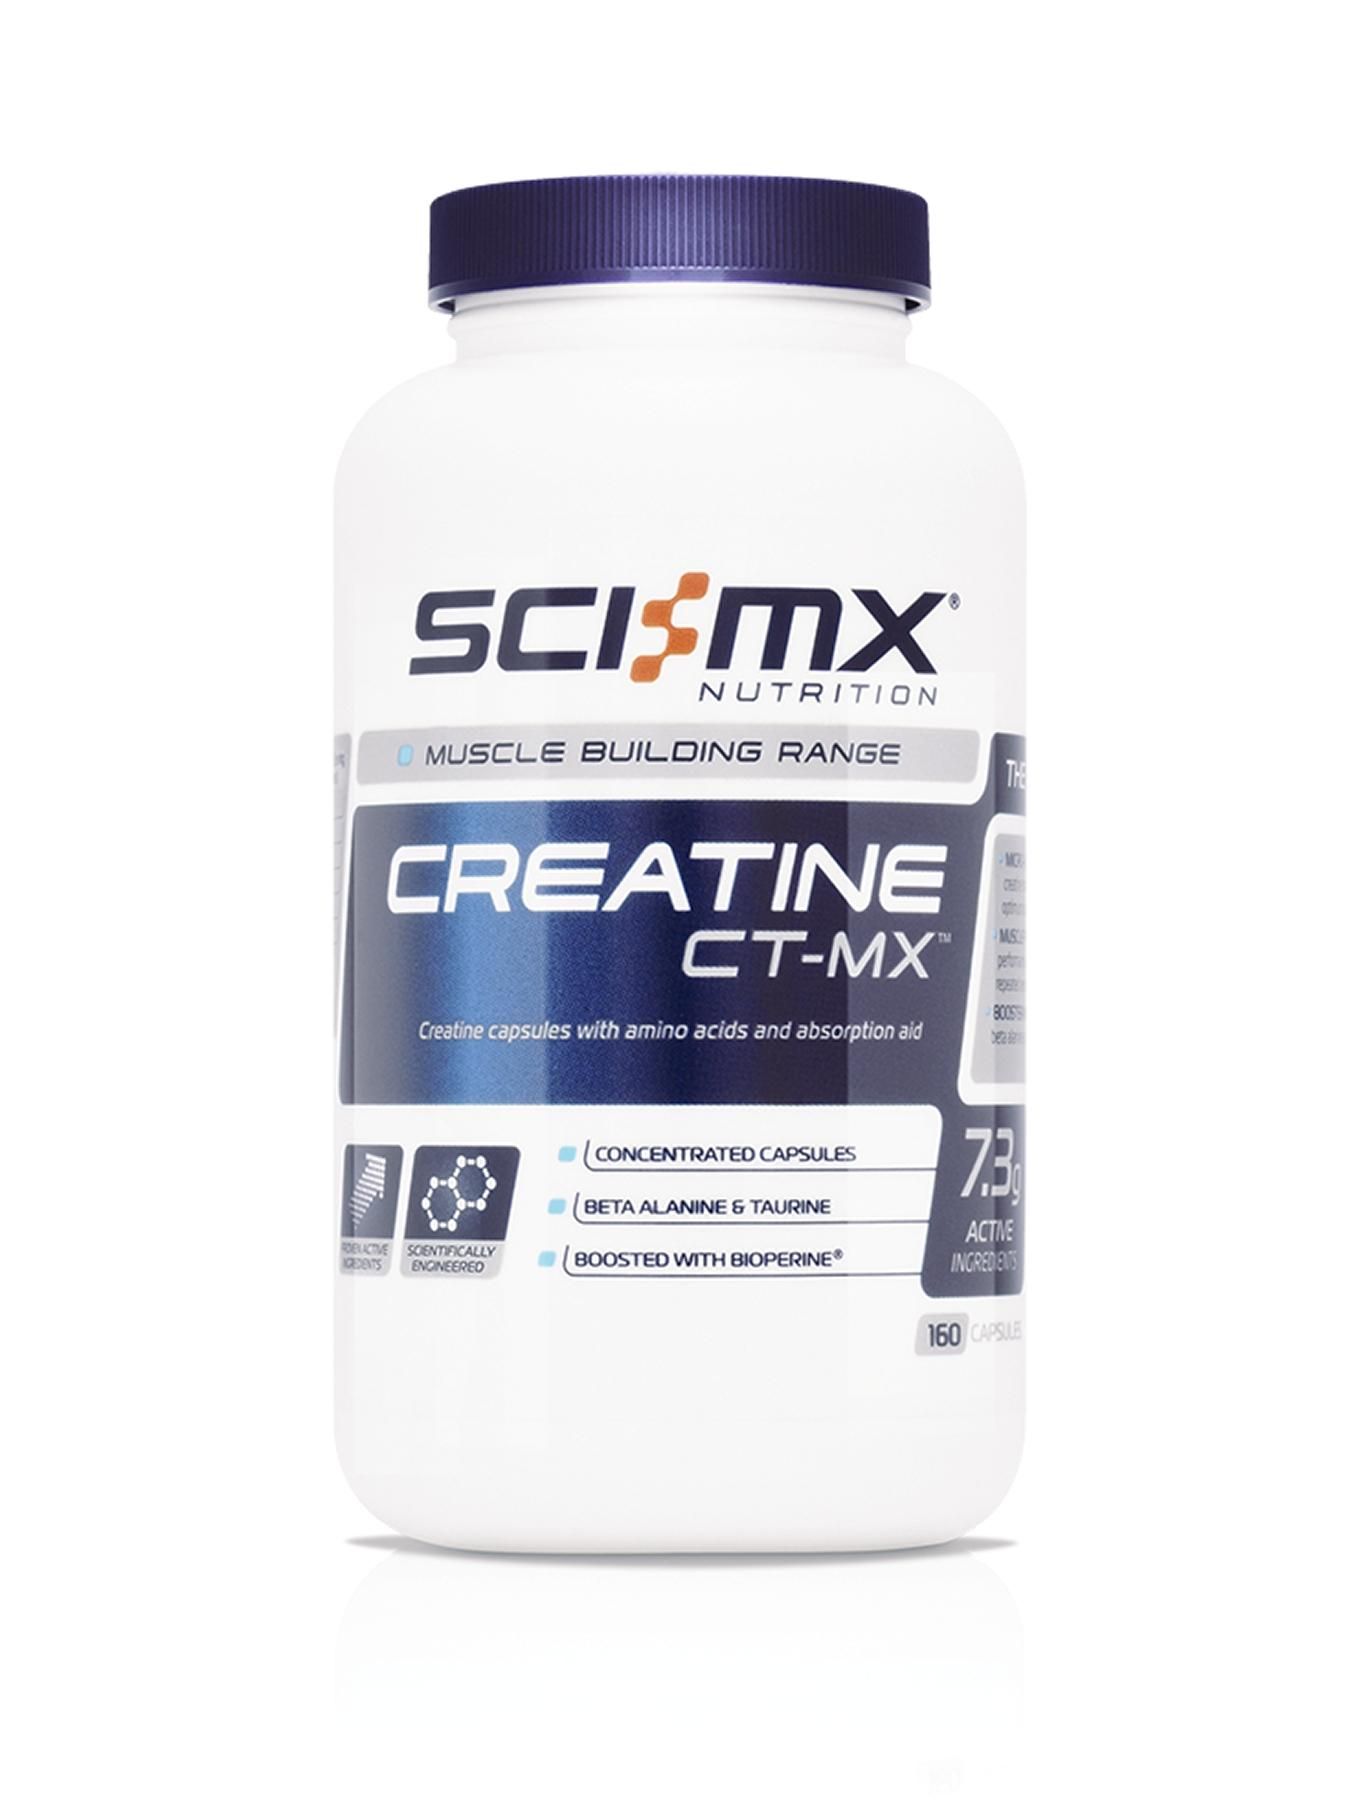 Sci-MX Creatine CT-MX (160 Capsules)